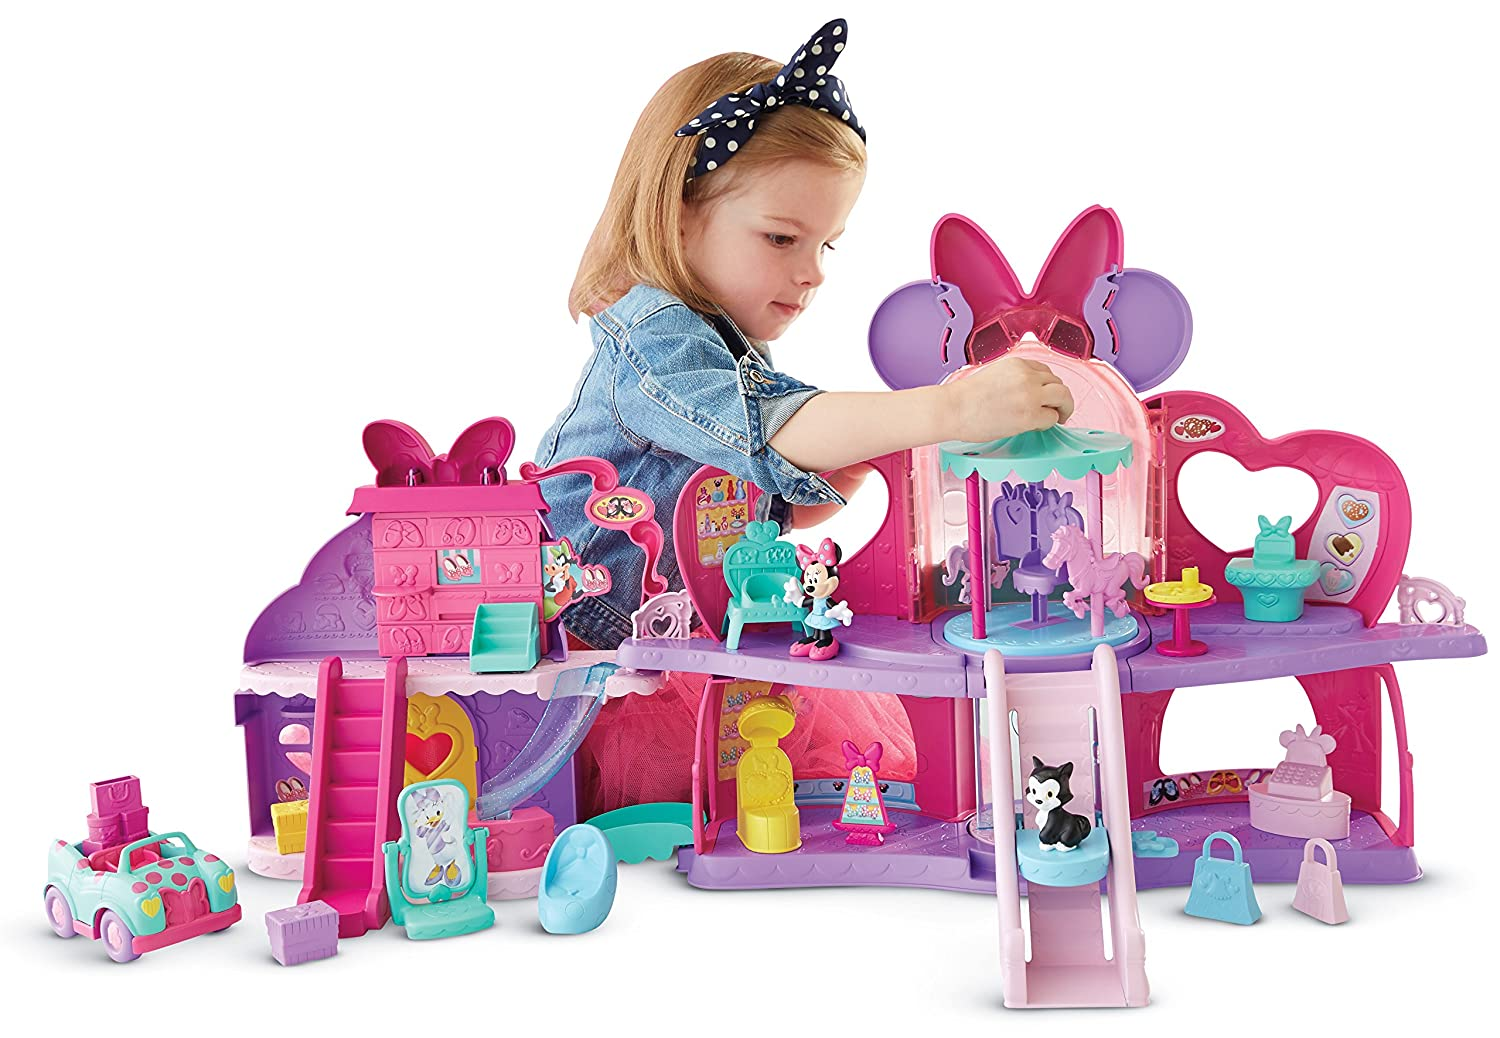 Toys For Girls 3 To 4 Years Old : Awesome toys for year old girls in